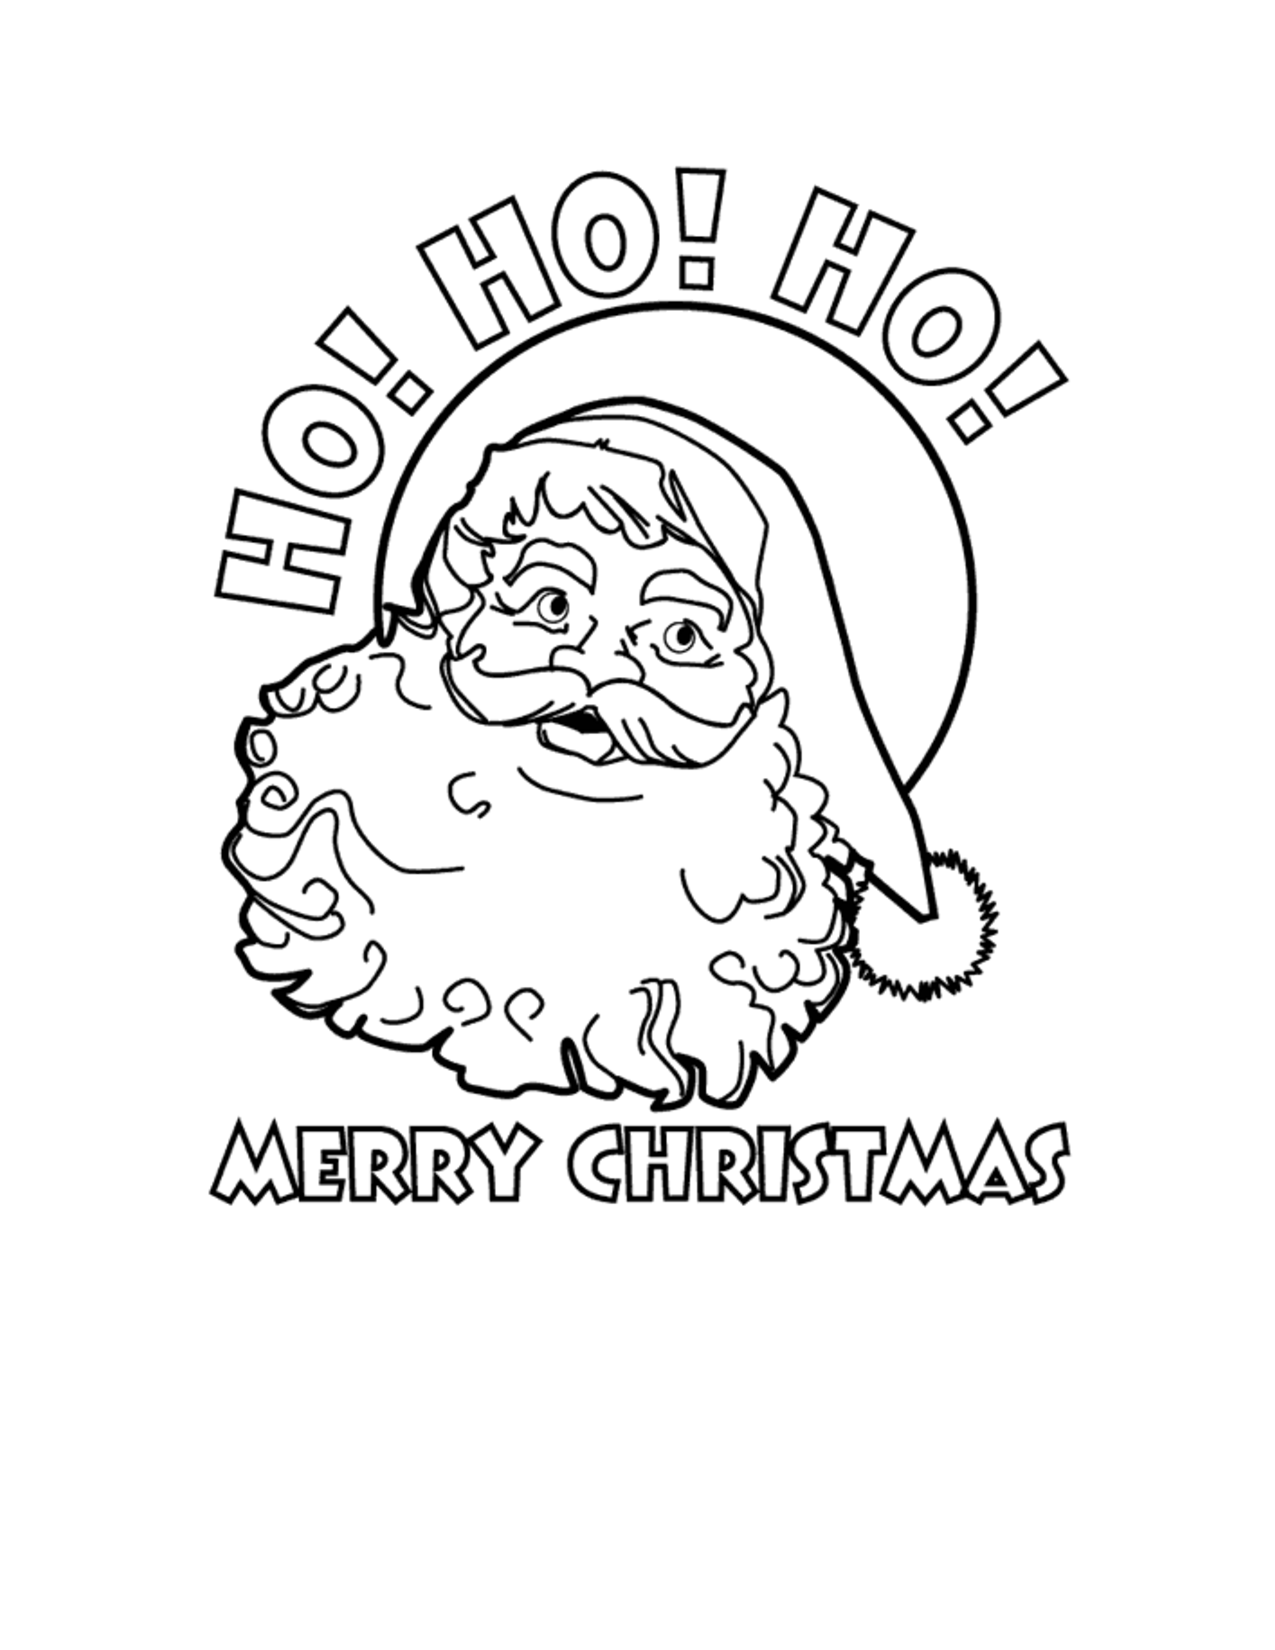 Merry Christmas Coloring Pages Free - Coloring Home